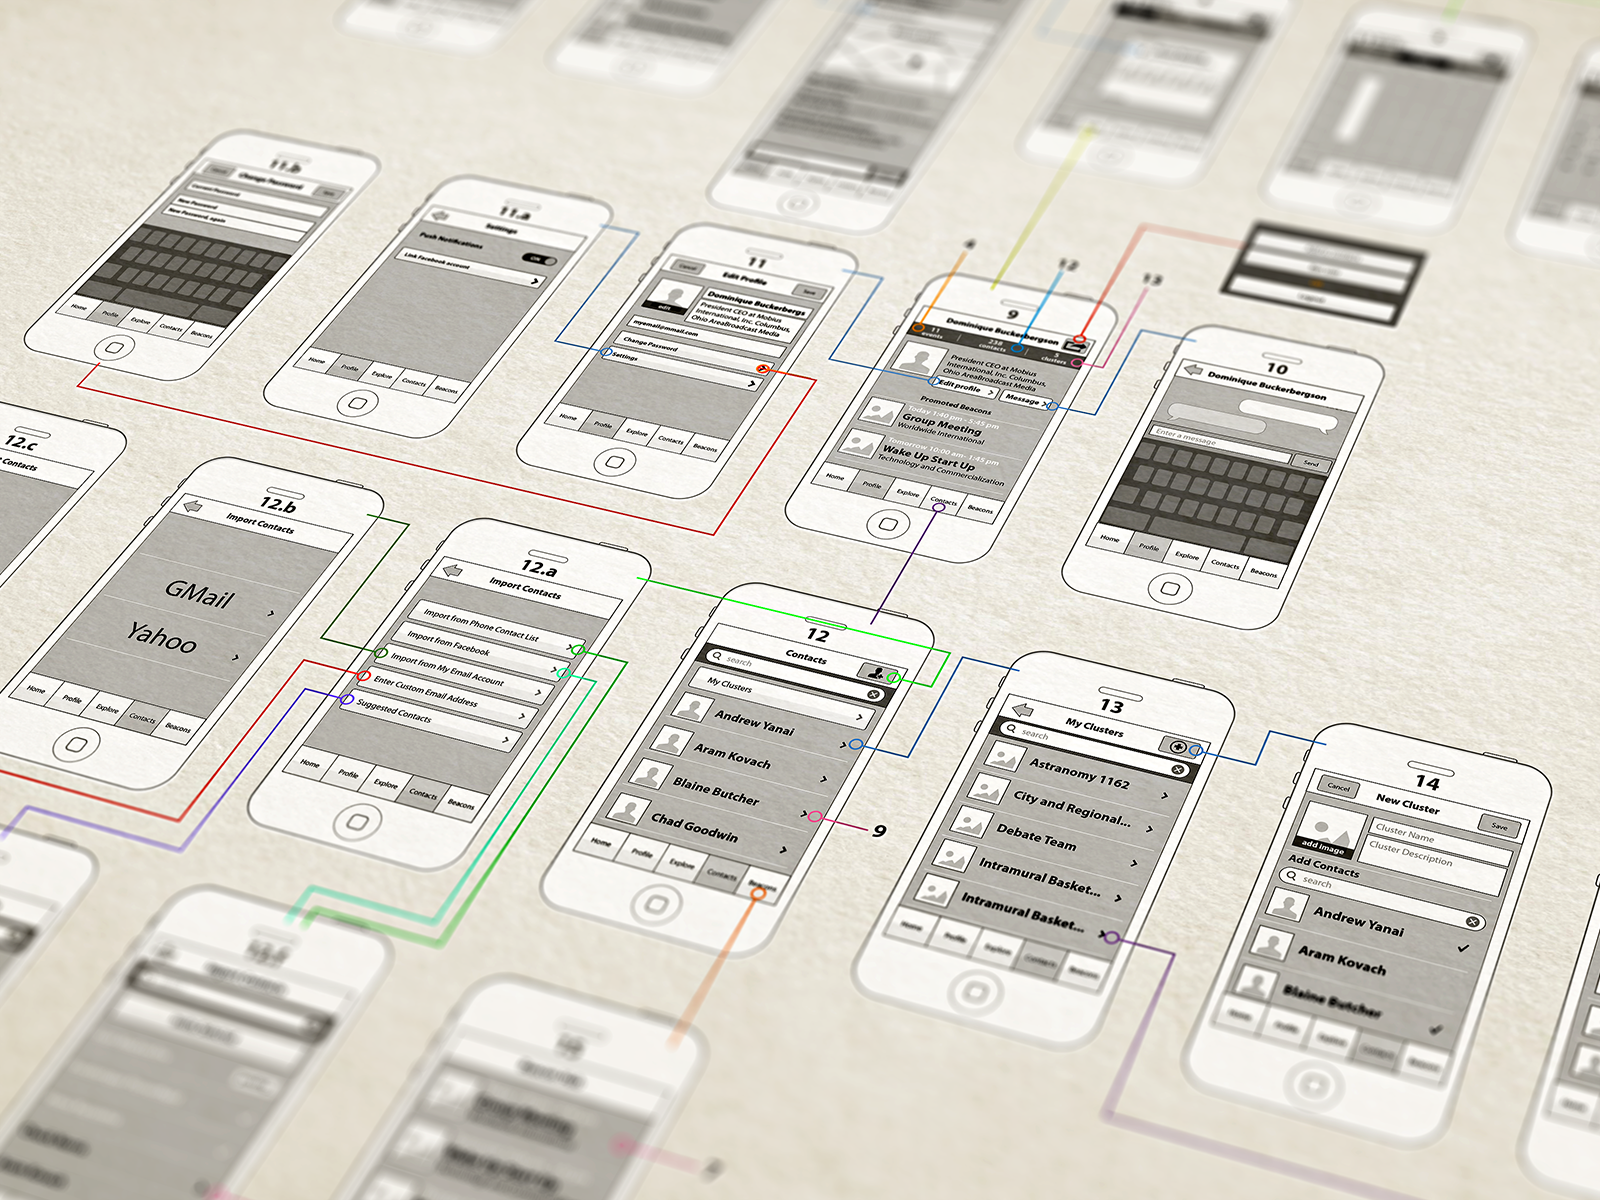 17 Best images about Wireframes UX Design on Pinterest | App ...